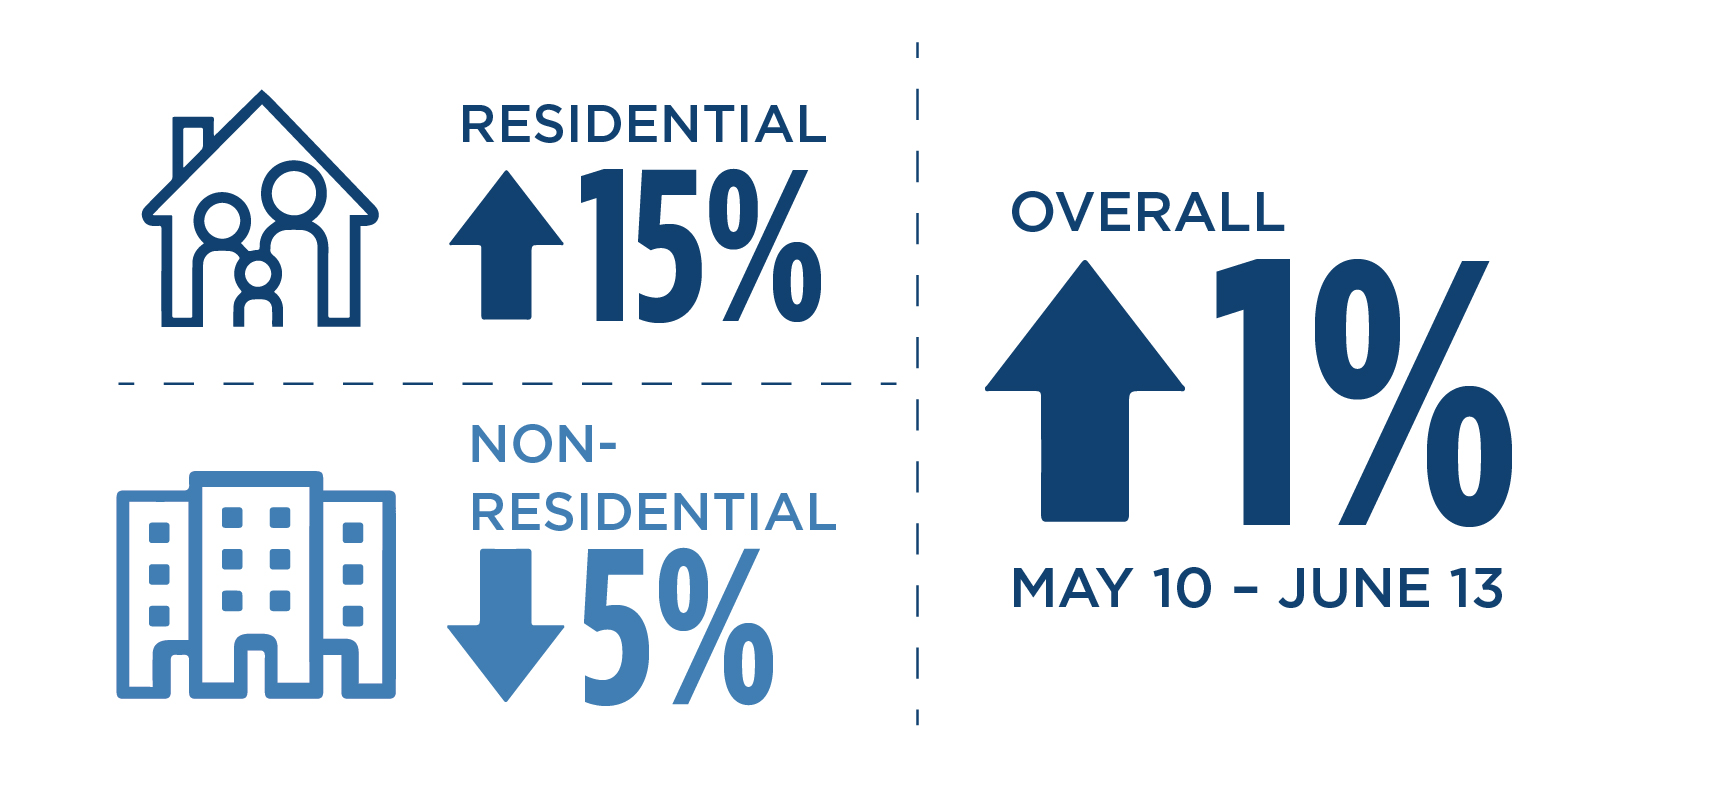 Infographic showing an increase of residential demand by 15% and a decrease of non-residential demand by 5% since the stay-at-home order in California from Late March - Mid May. And from Mid May – Mid June an overall 1% increase in electricity consumption.